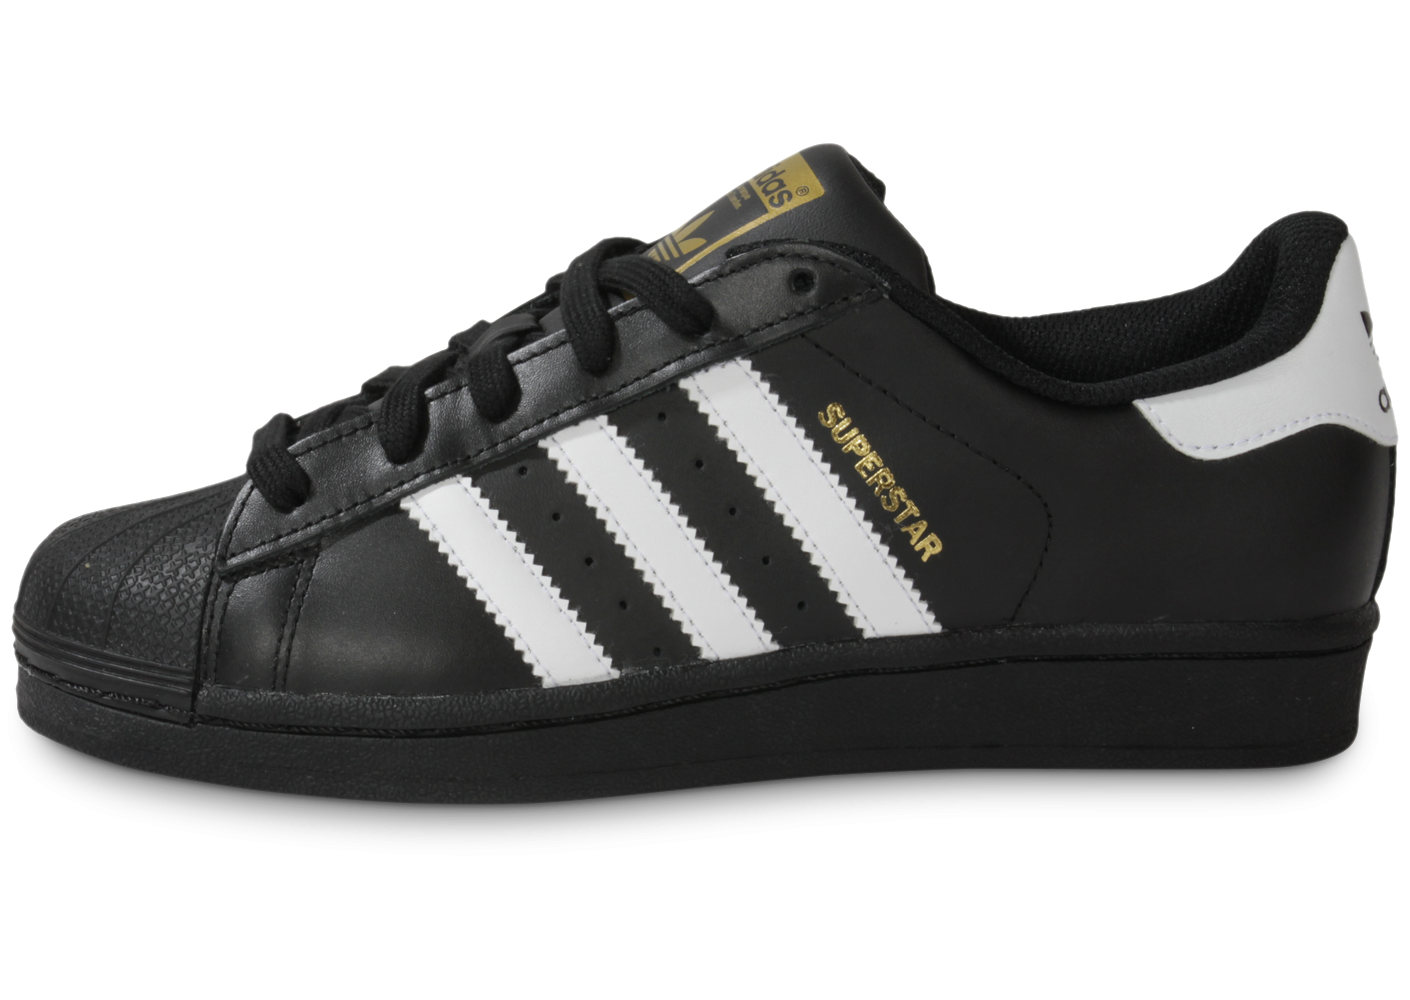 adidas superstar sold